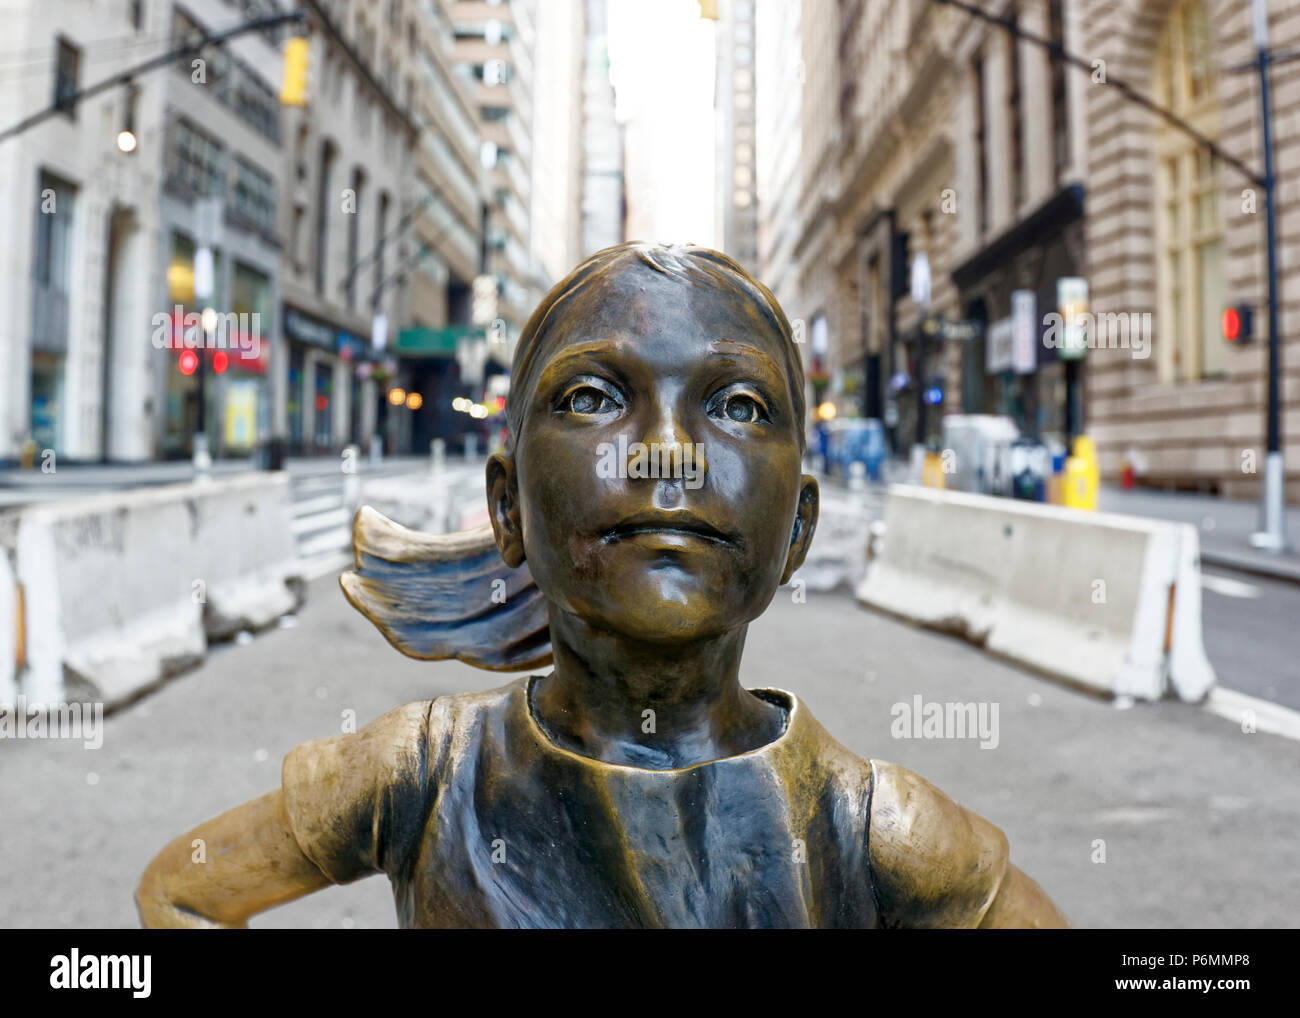 Fearless Girl statue on wall Street - Stock Image